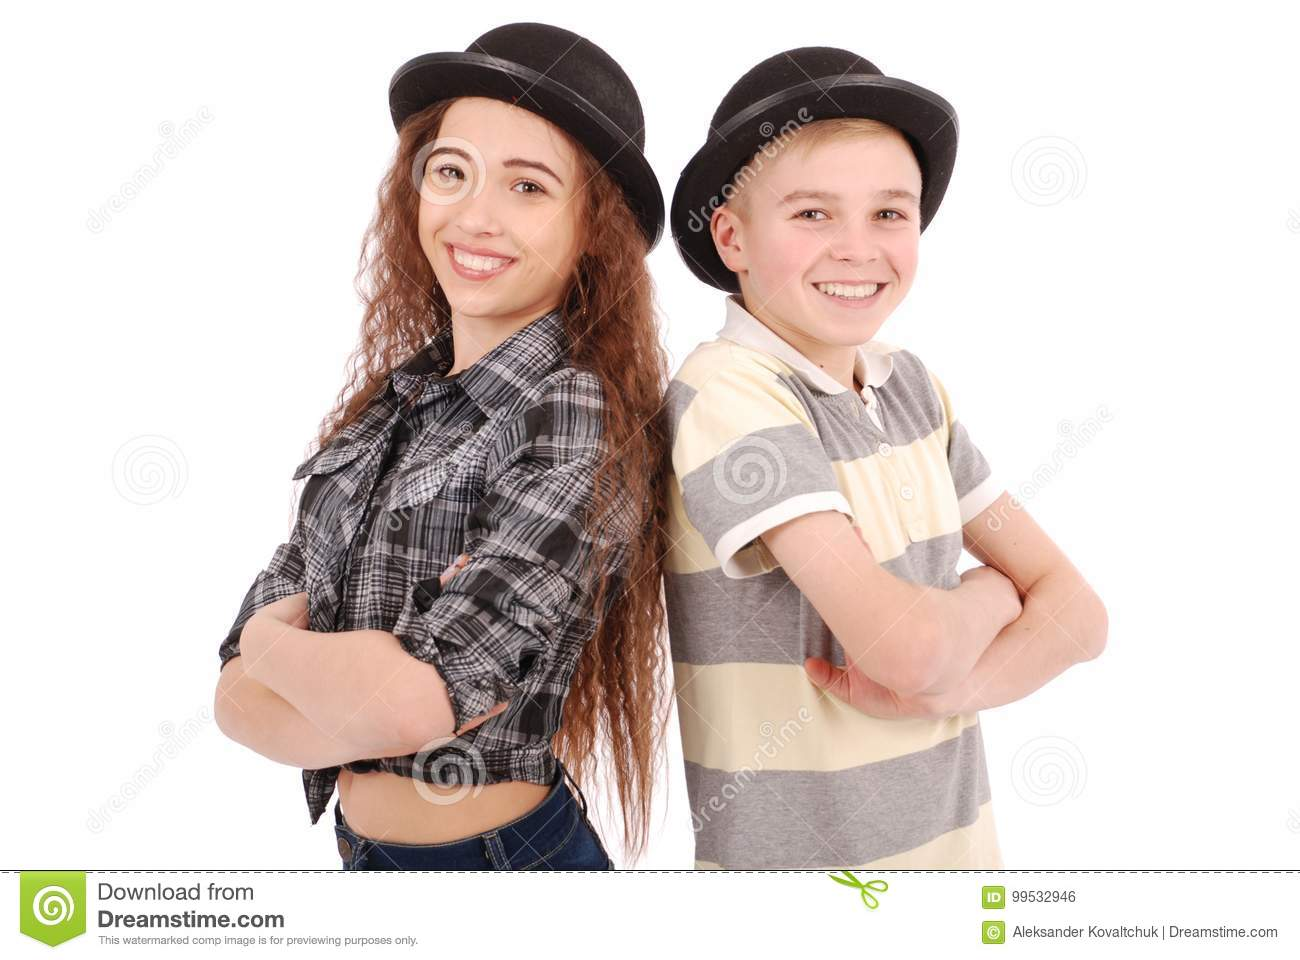 c548ff40f50 Portrait Of Young Girl And Boy Posing In Black Bowler Hat Stock ...